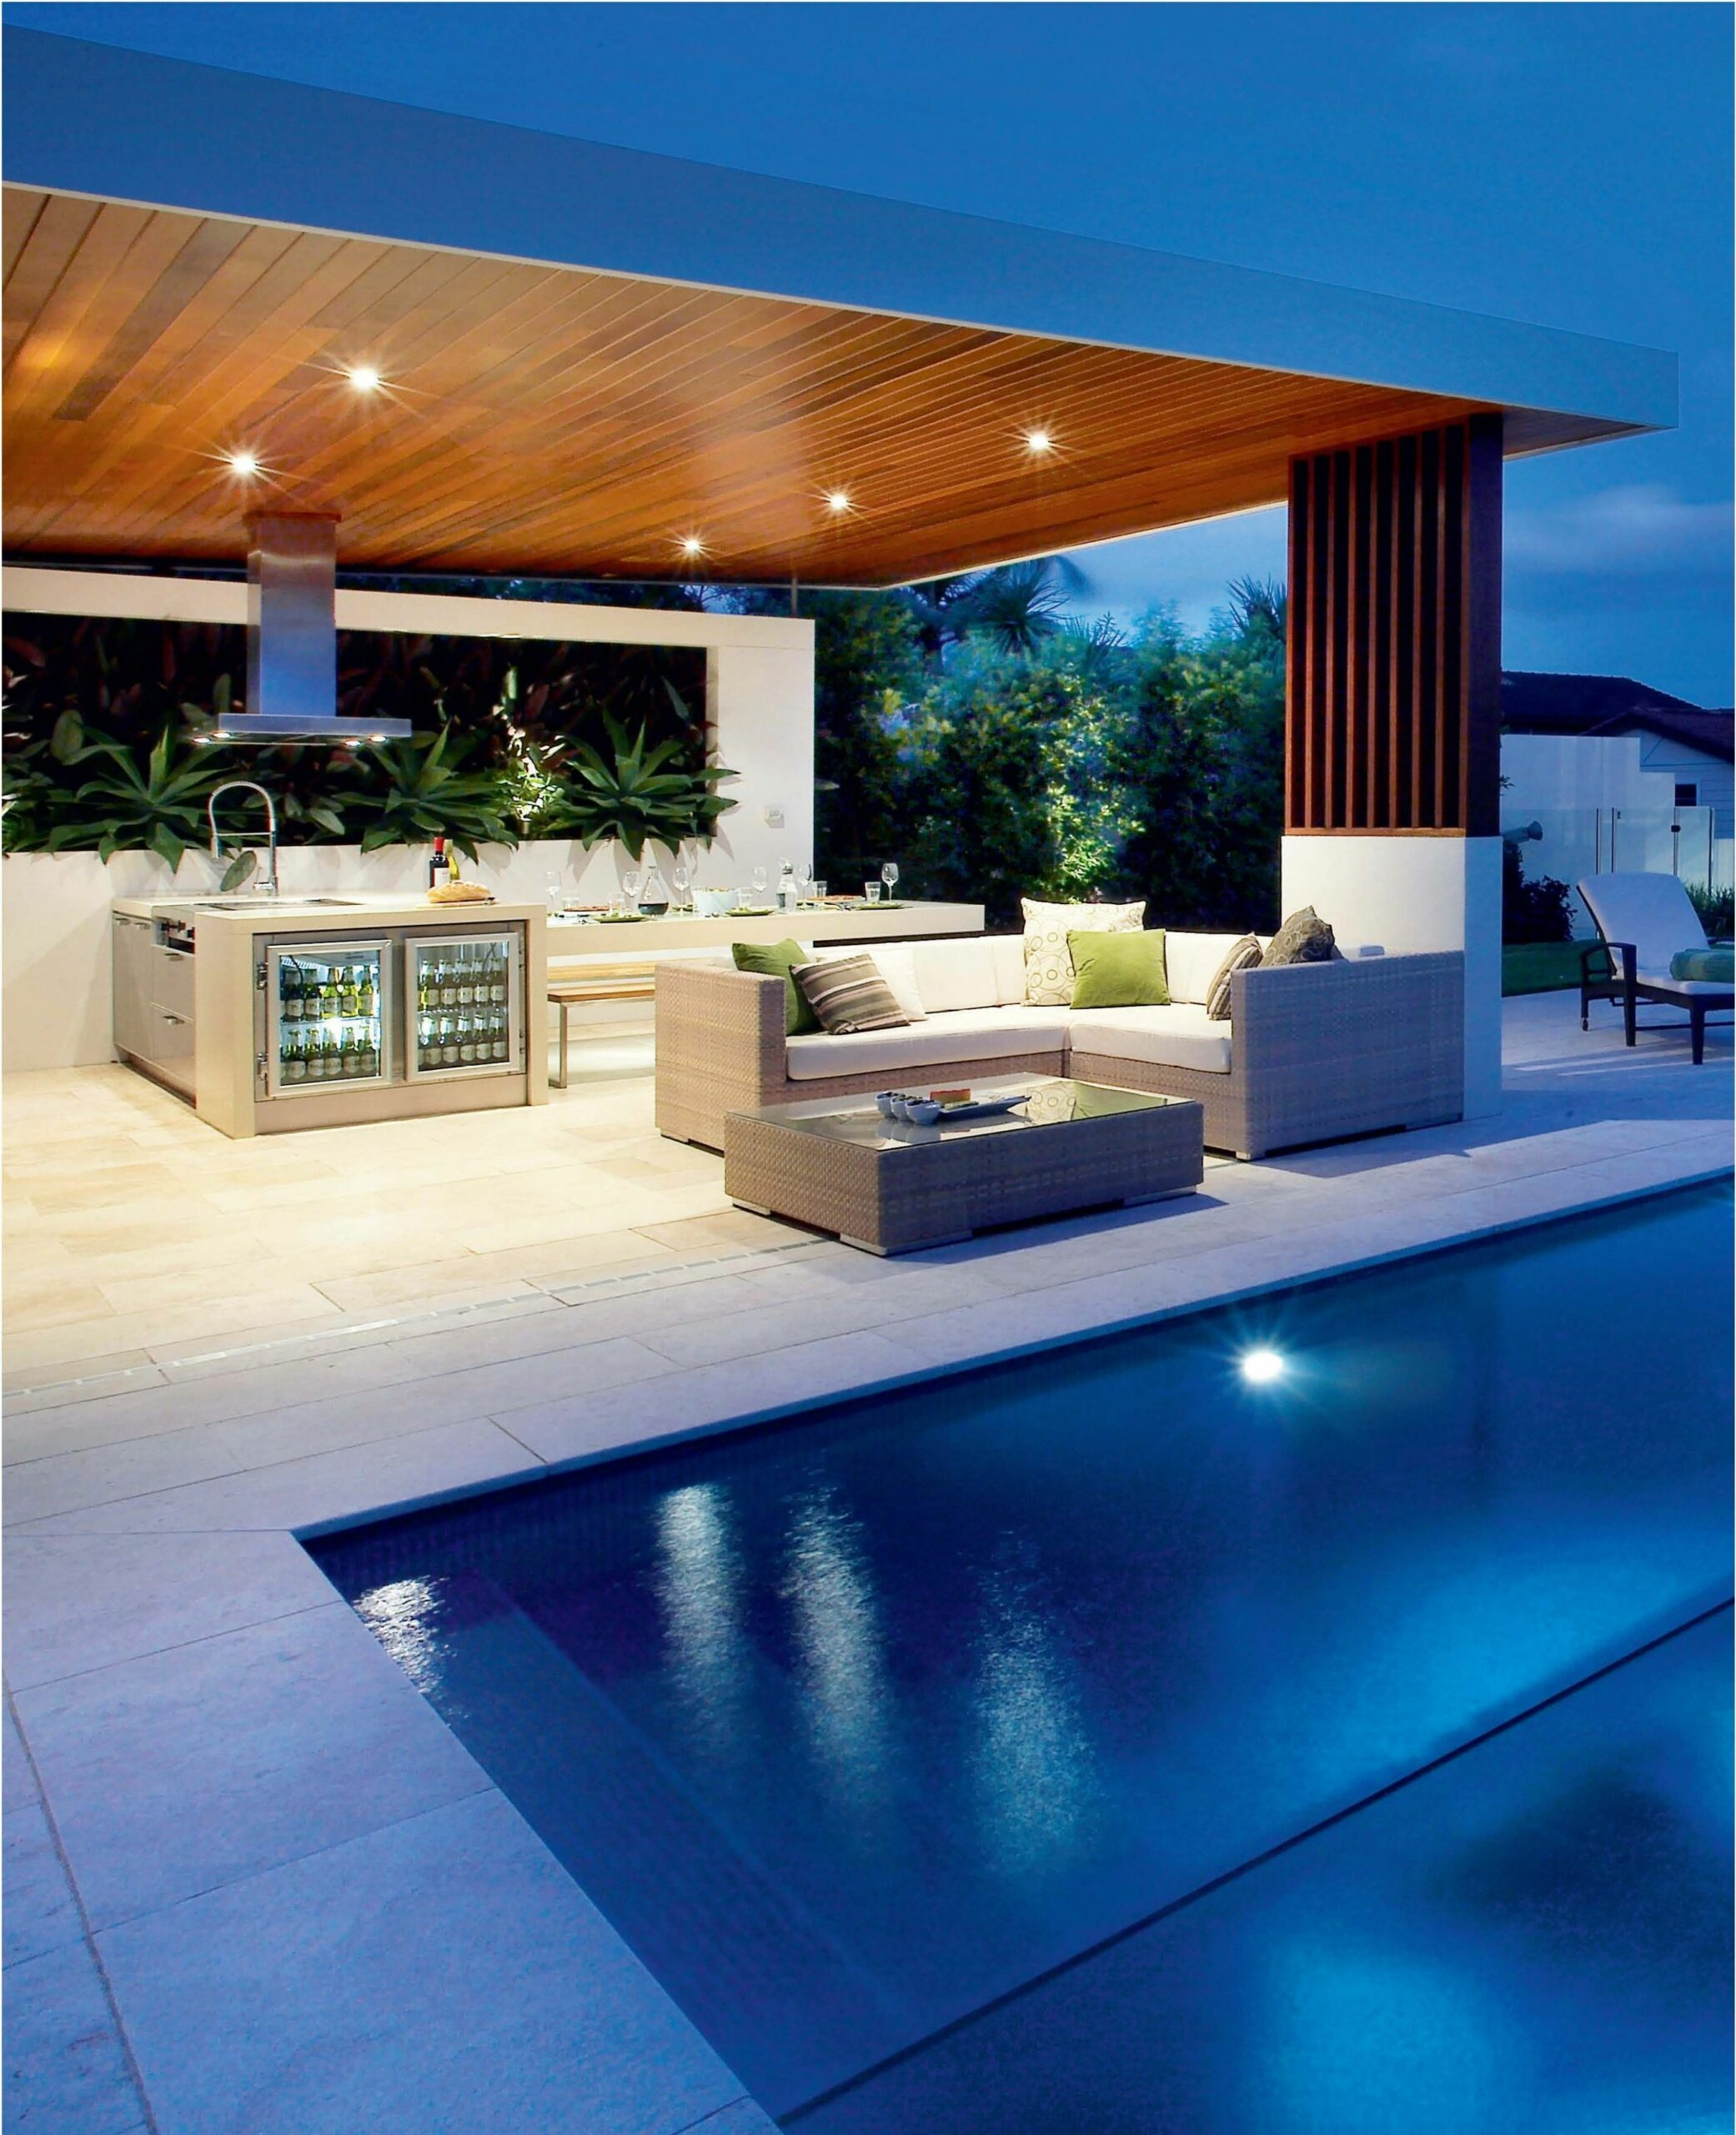 8 Modern Outdoor Design Ideas | Modern outdoor kitchen - outdoor pool kitchen ideas